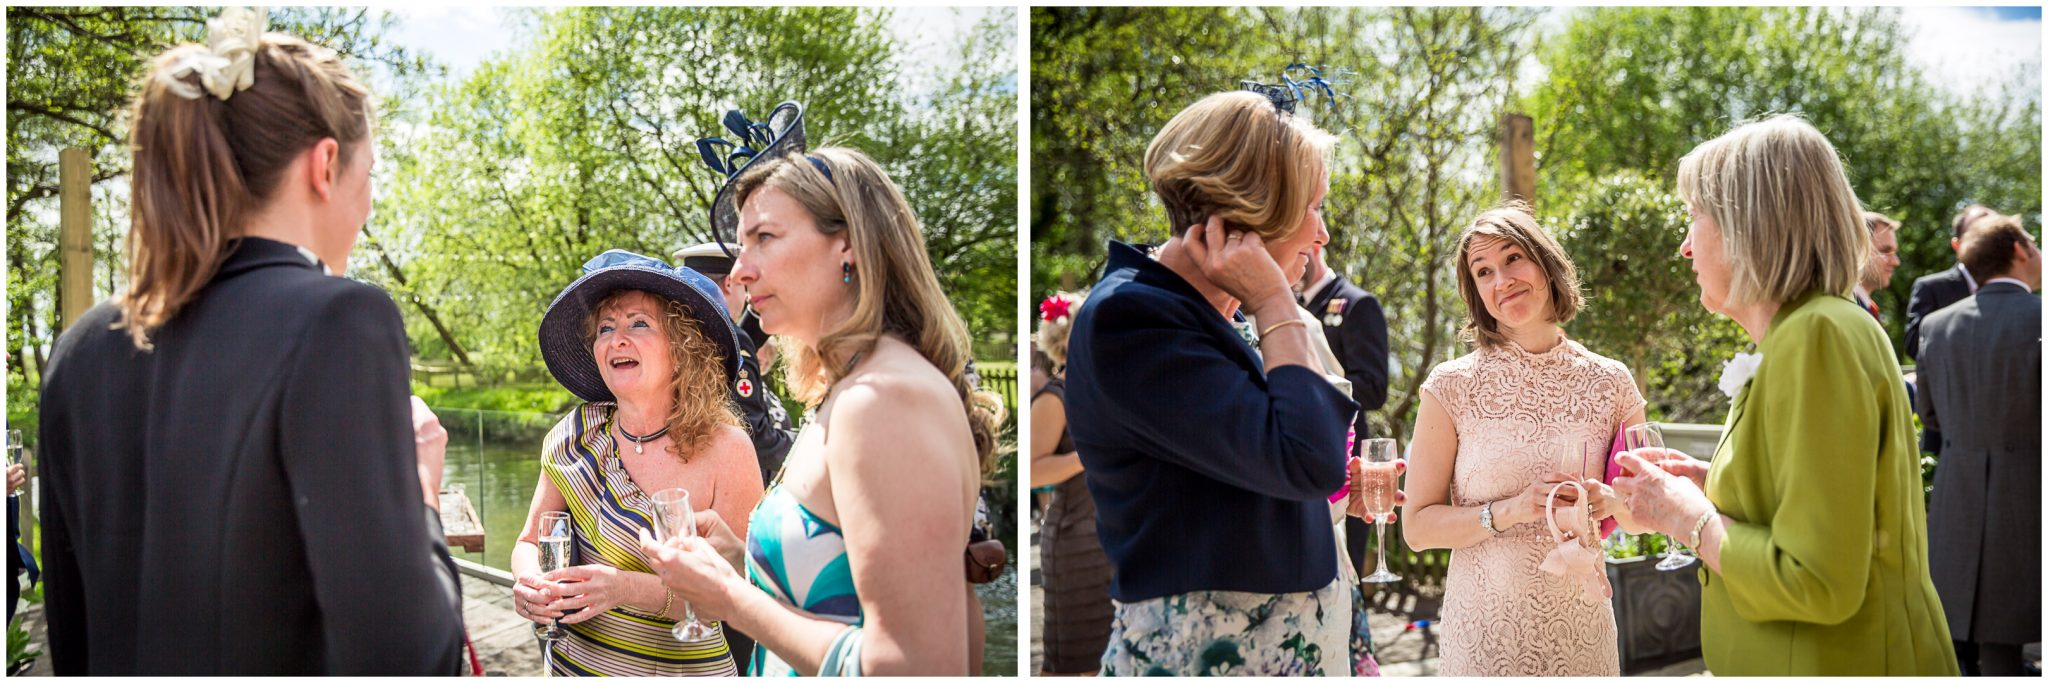 Sopley wedding photographer candid photos of guests outdoors